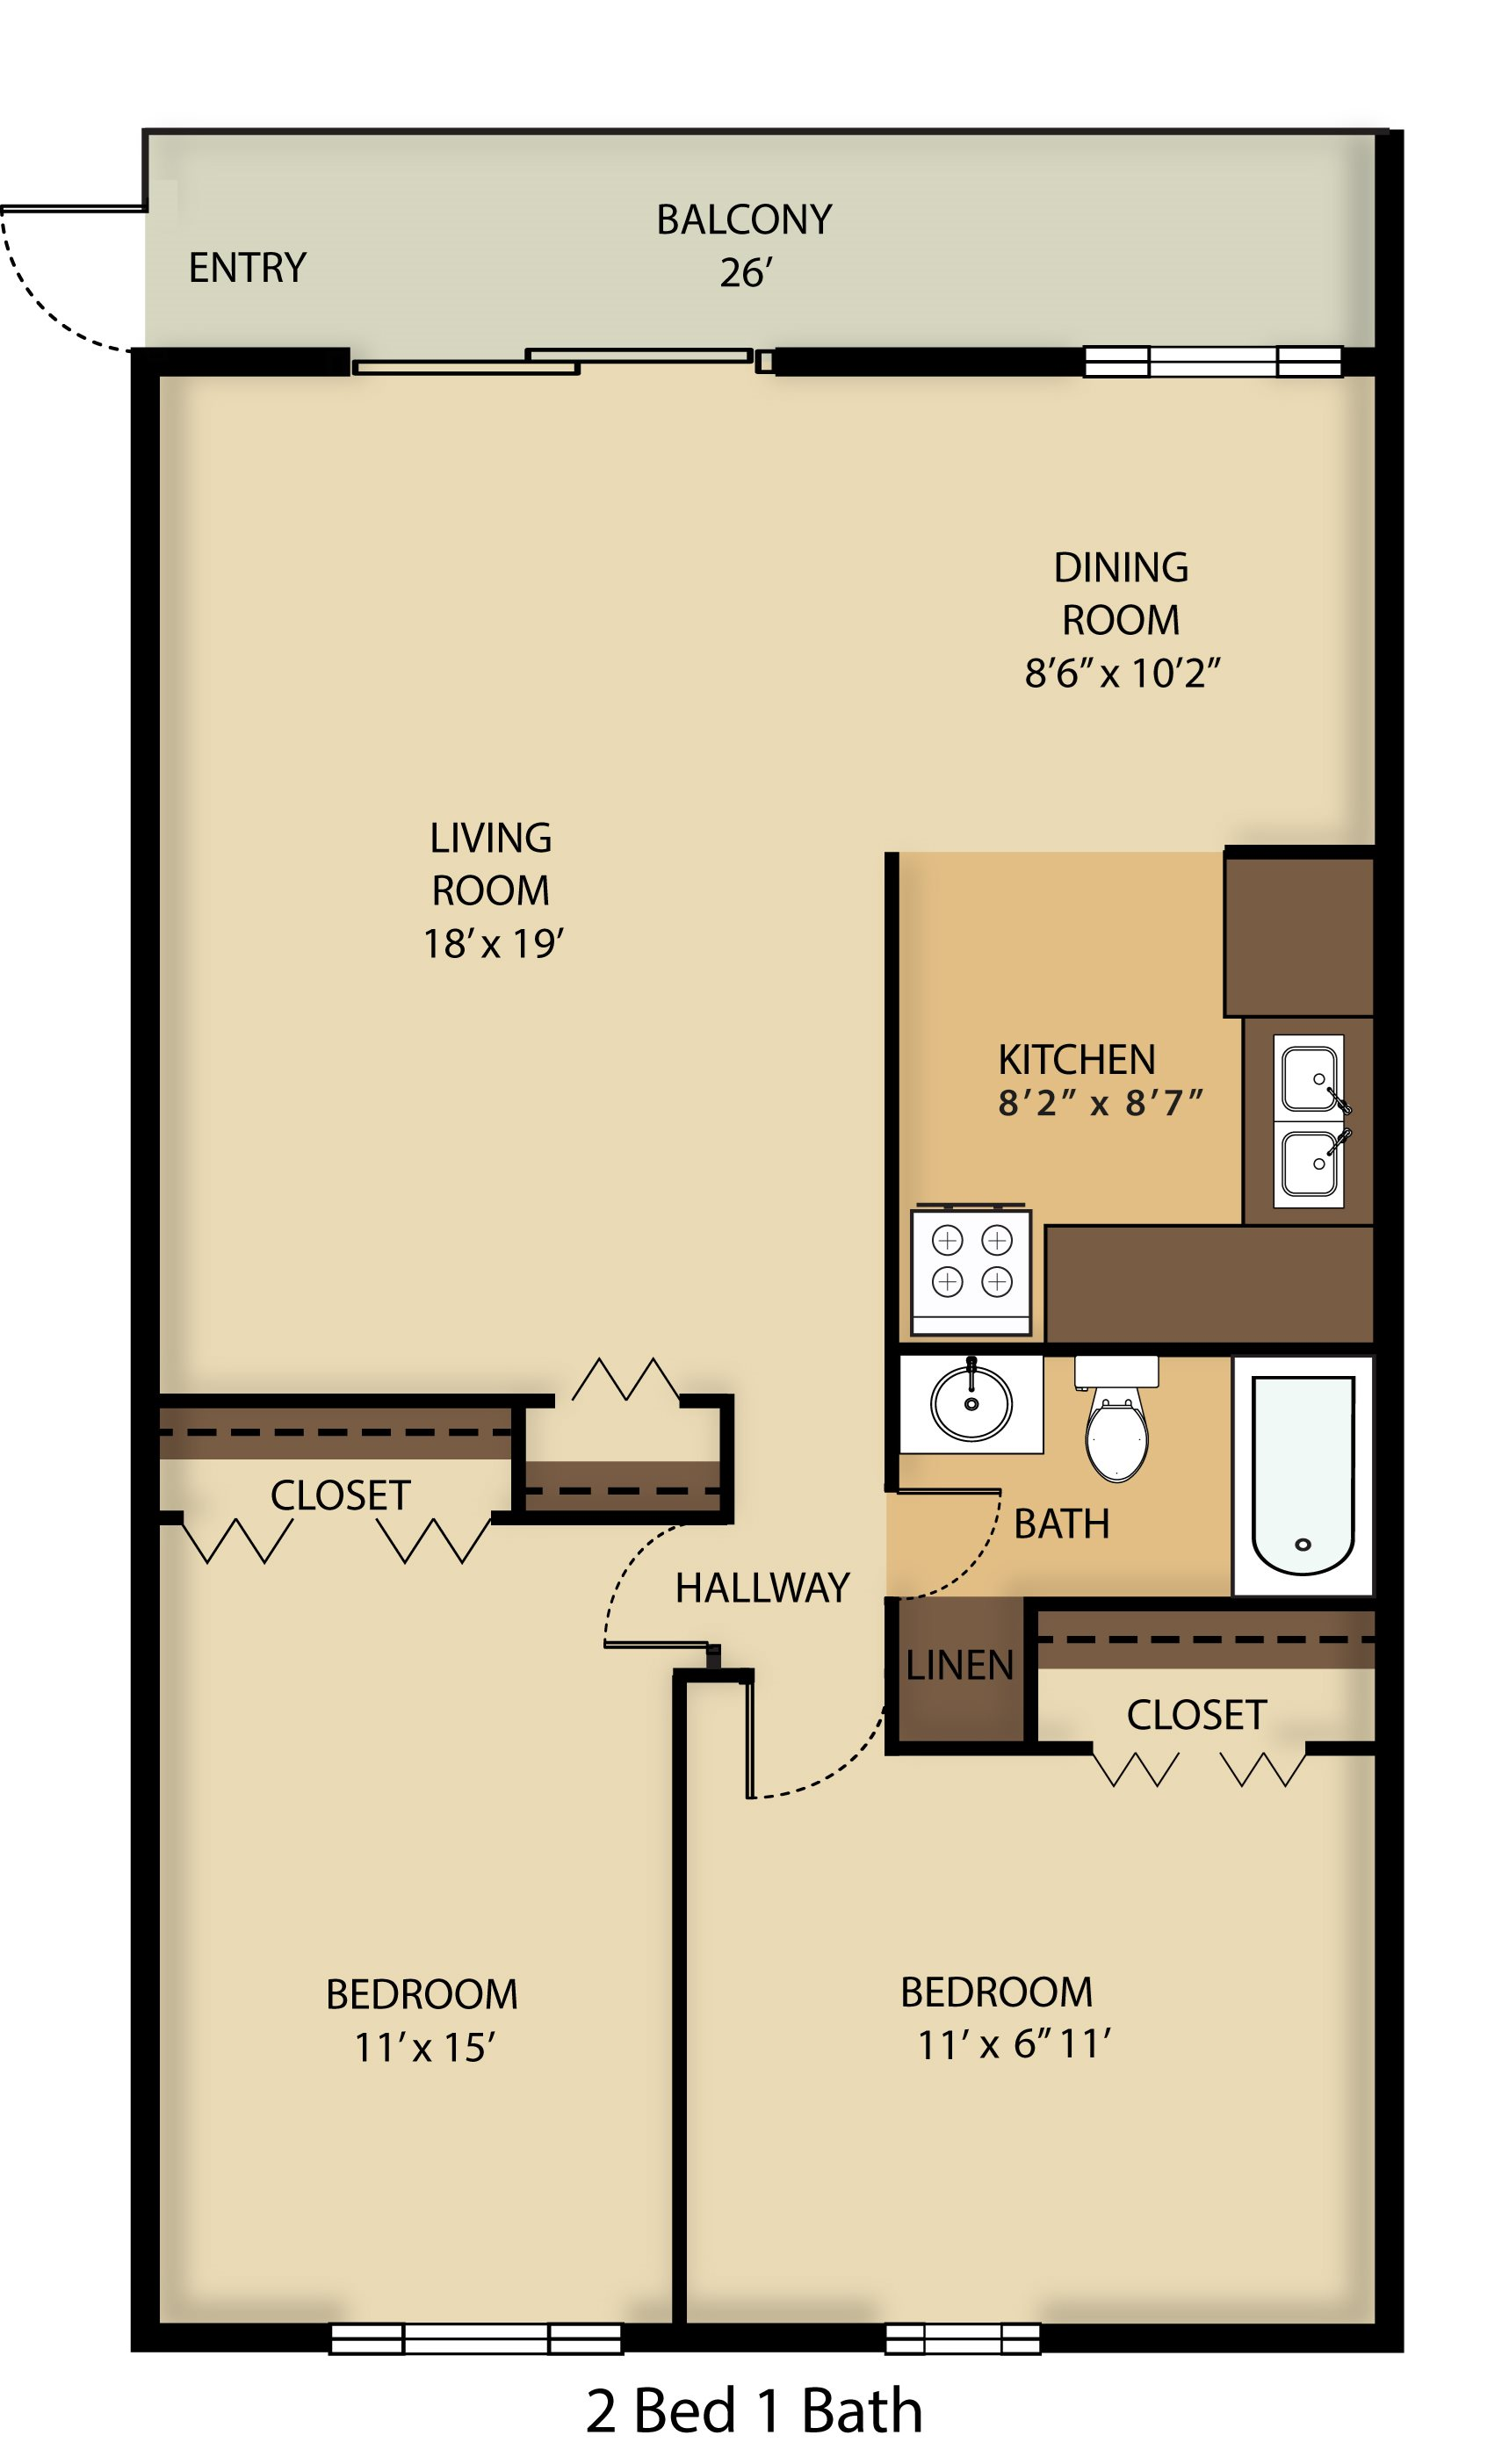 floor plans of palace place in mississauga, on